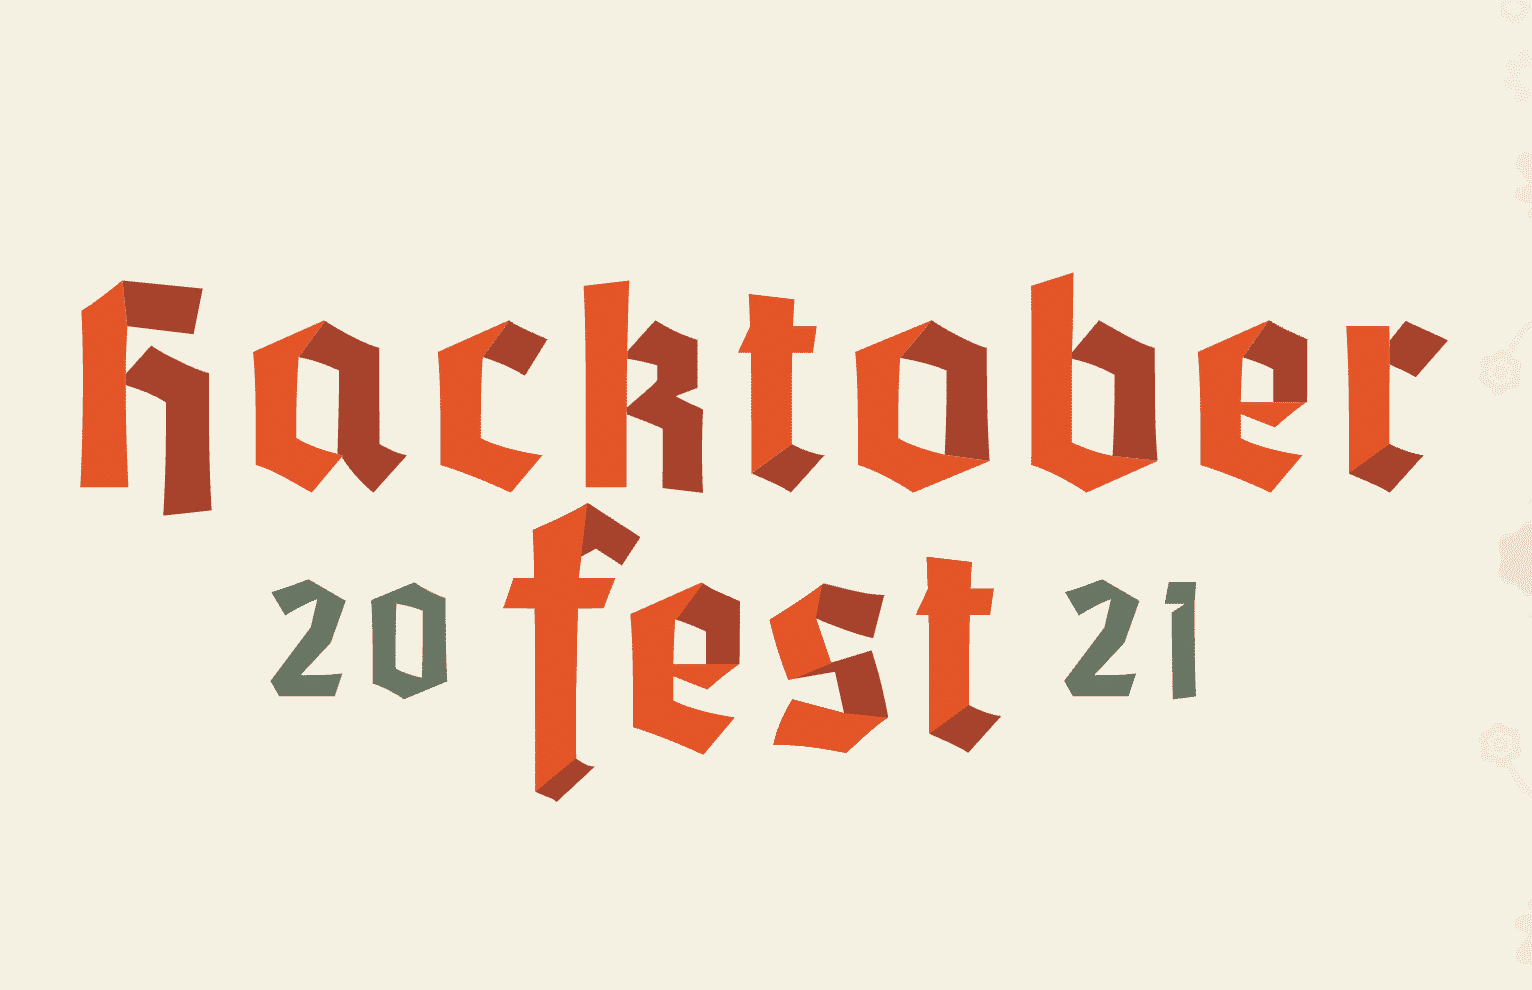 hacktoberfest-adds-gitlab-support-updates-participation-requirements-to-combat-open-source-project-spam Hacktoberfest Adds GitLab Support, Updates Participation Requirements to Combat Open Source Project Spam